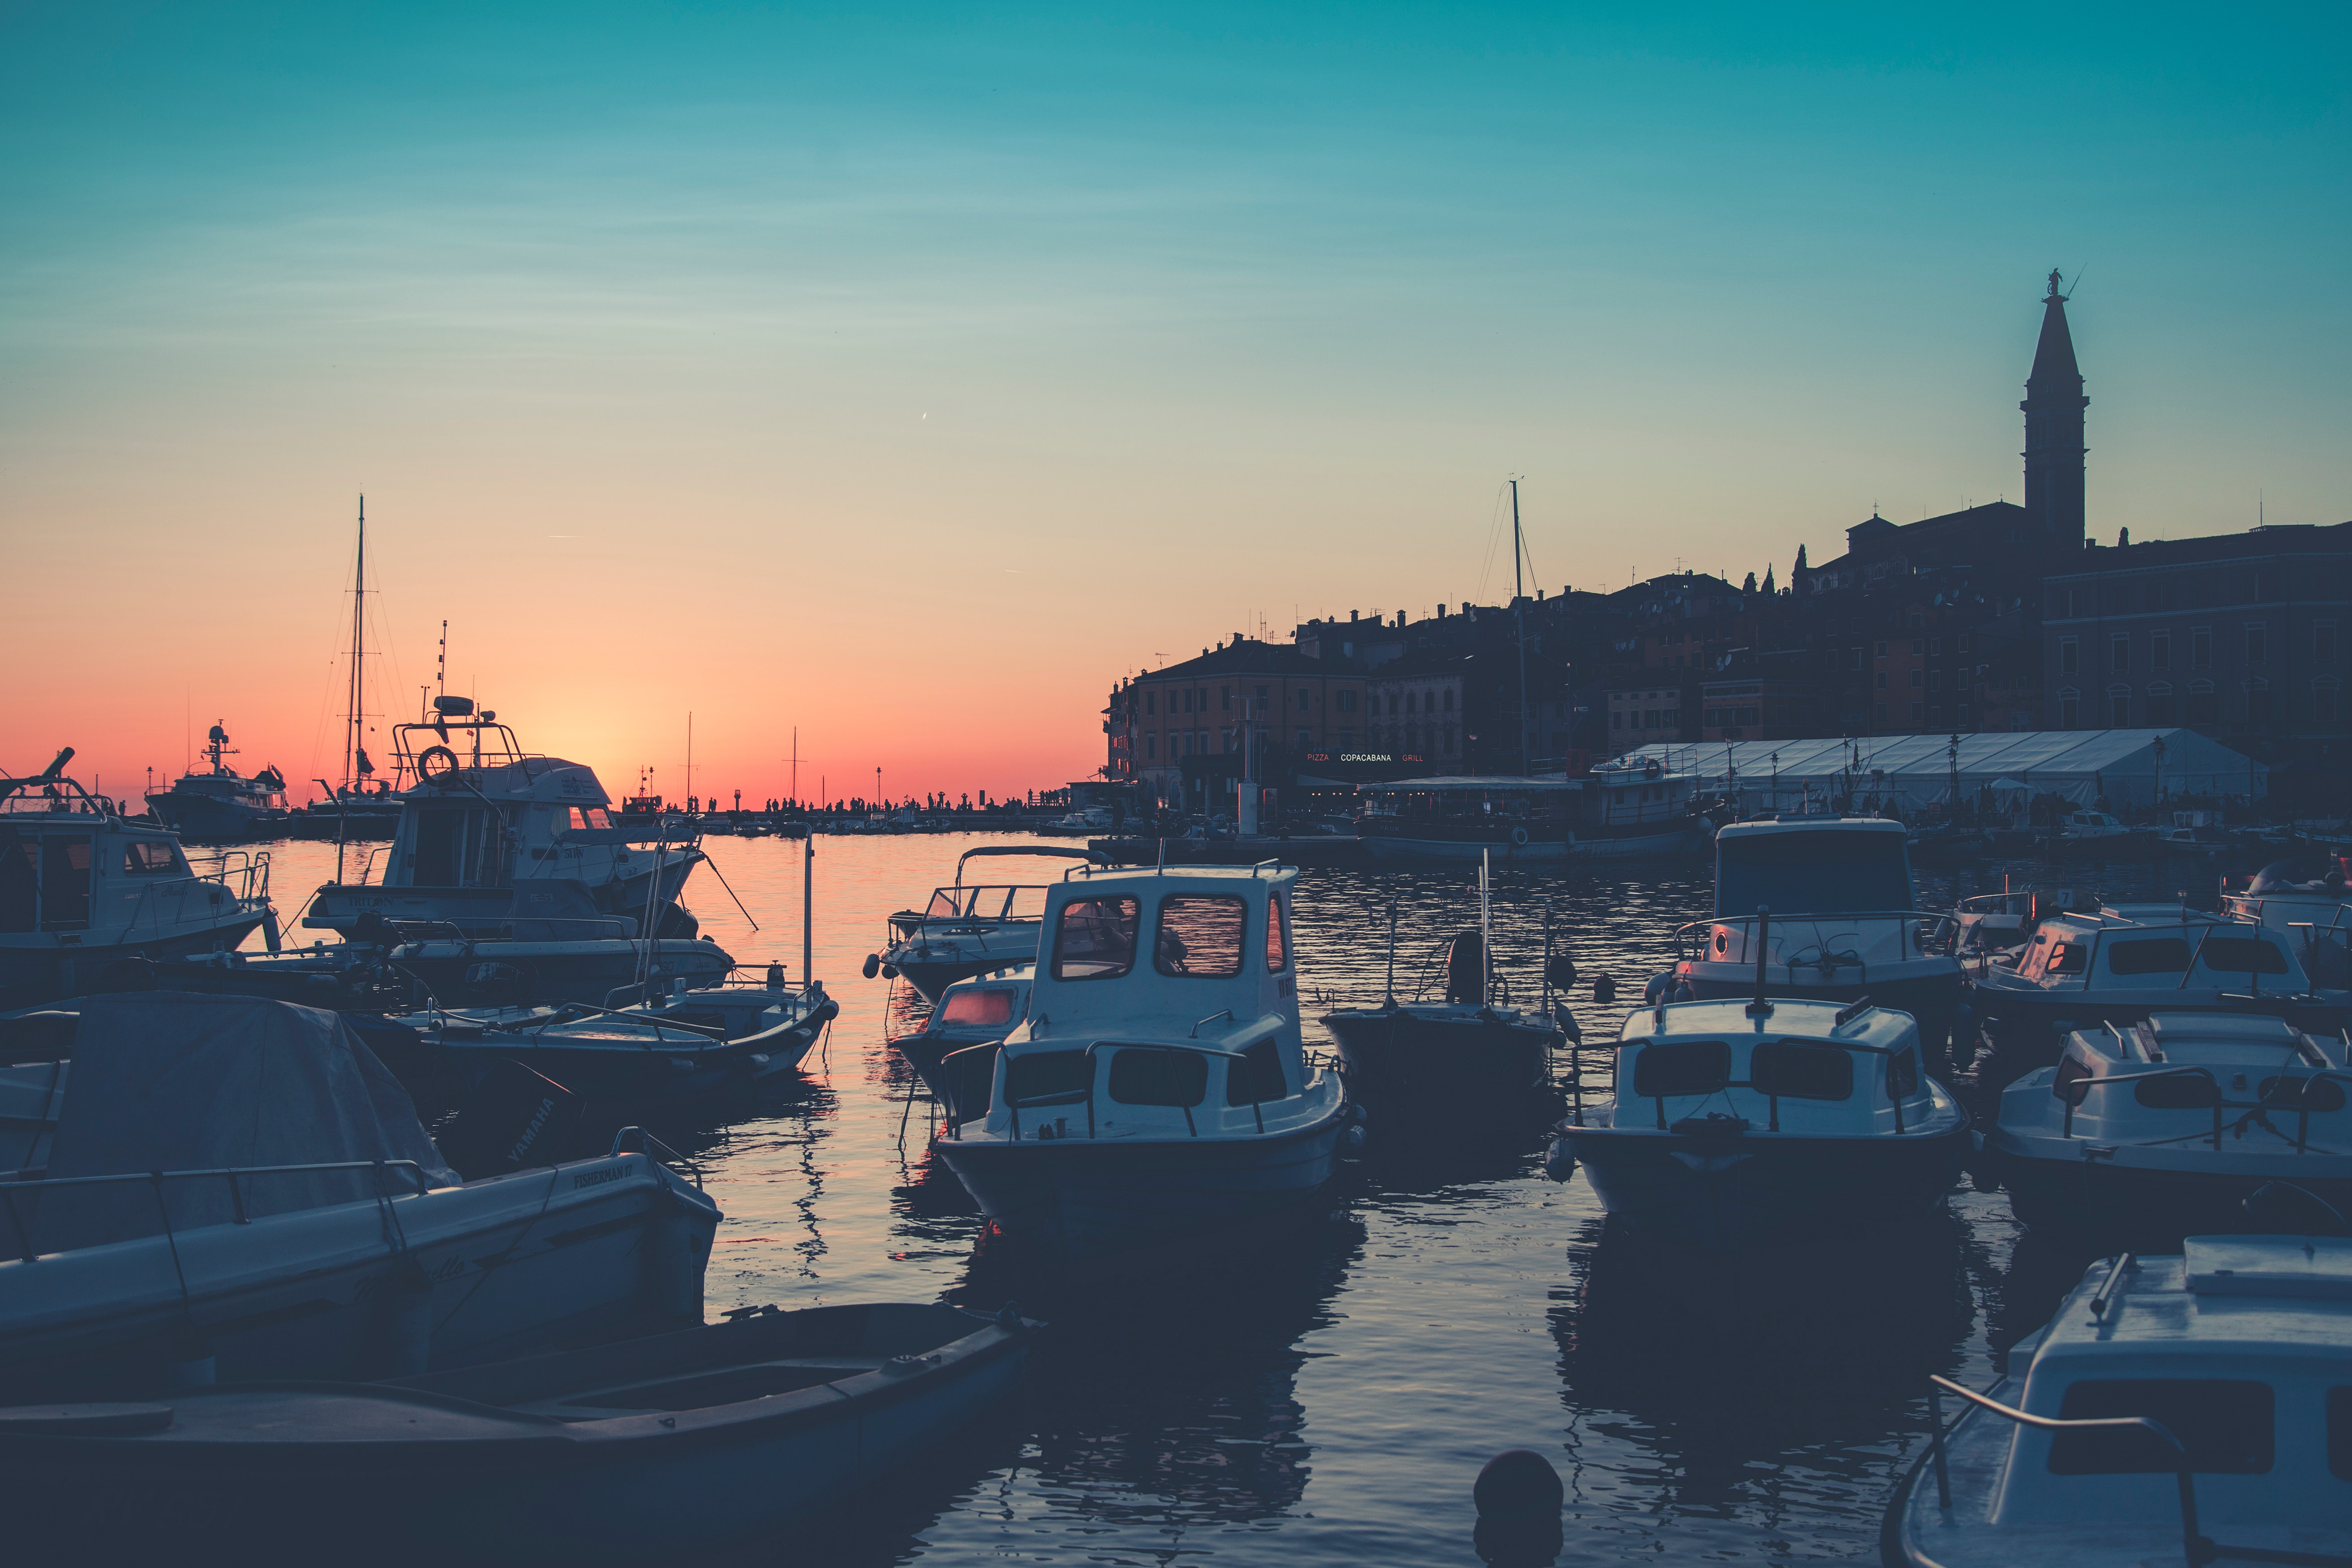 Bunch of Boats on Body of Water during Golden Hour, Bay, Tower, Seaport, Silhouette, HQ Photo